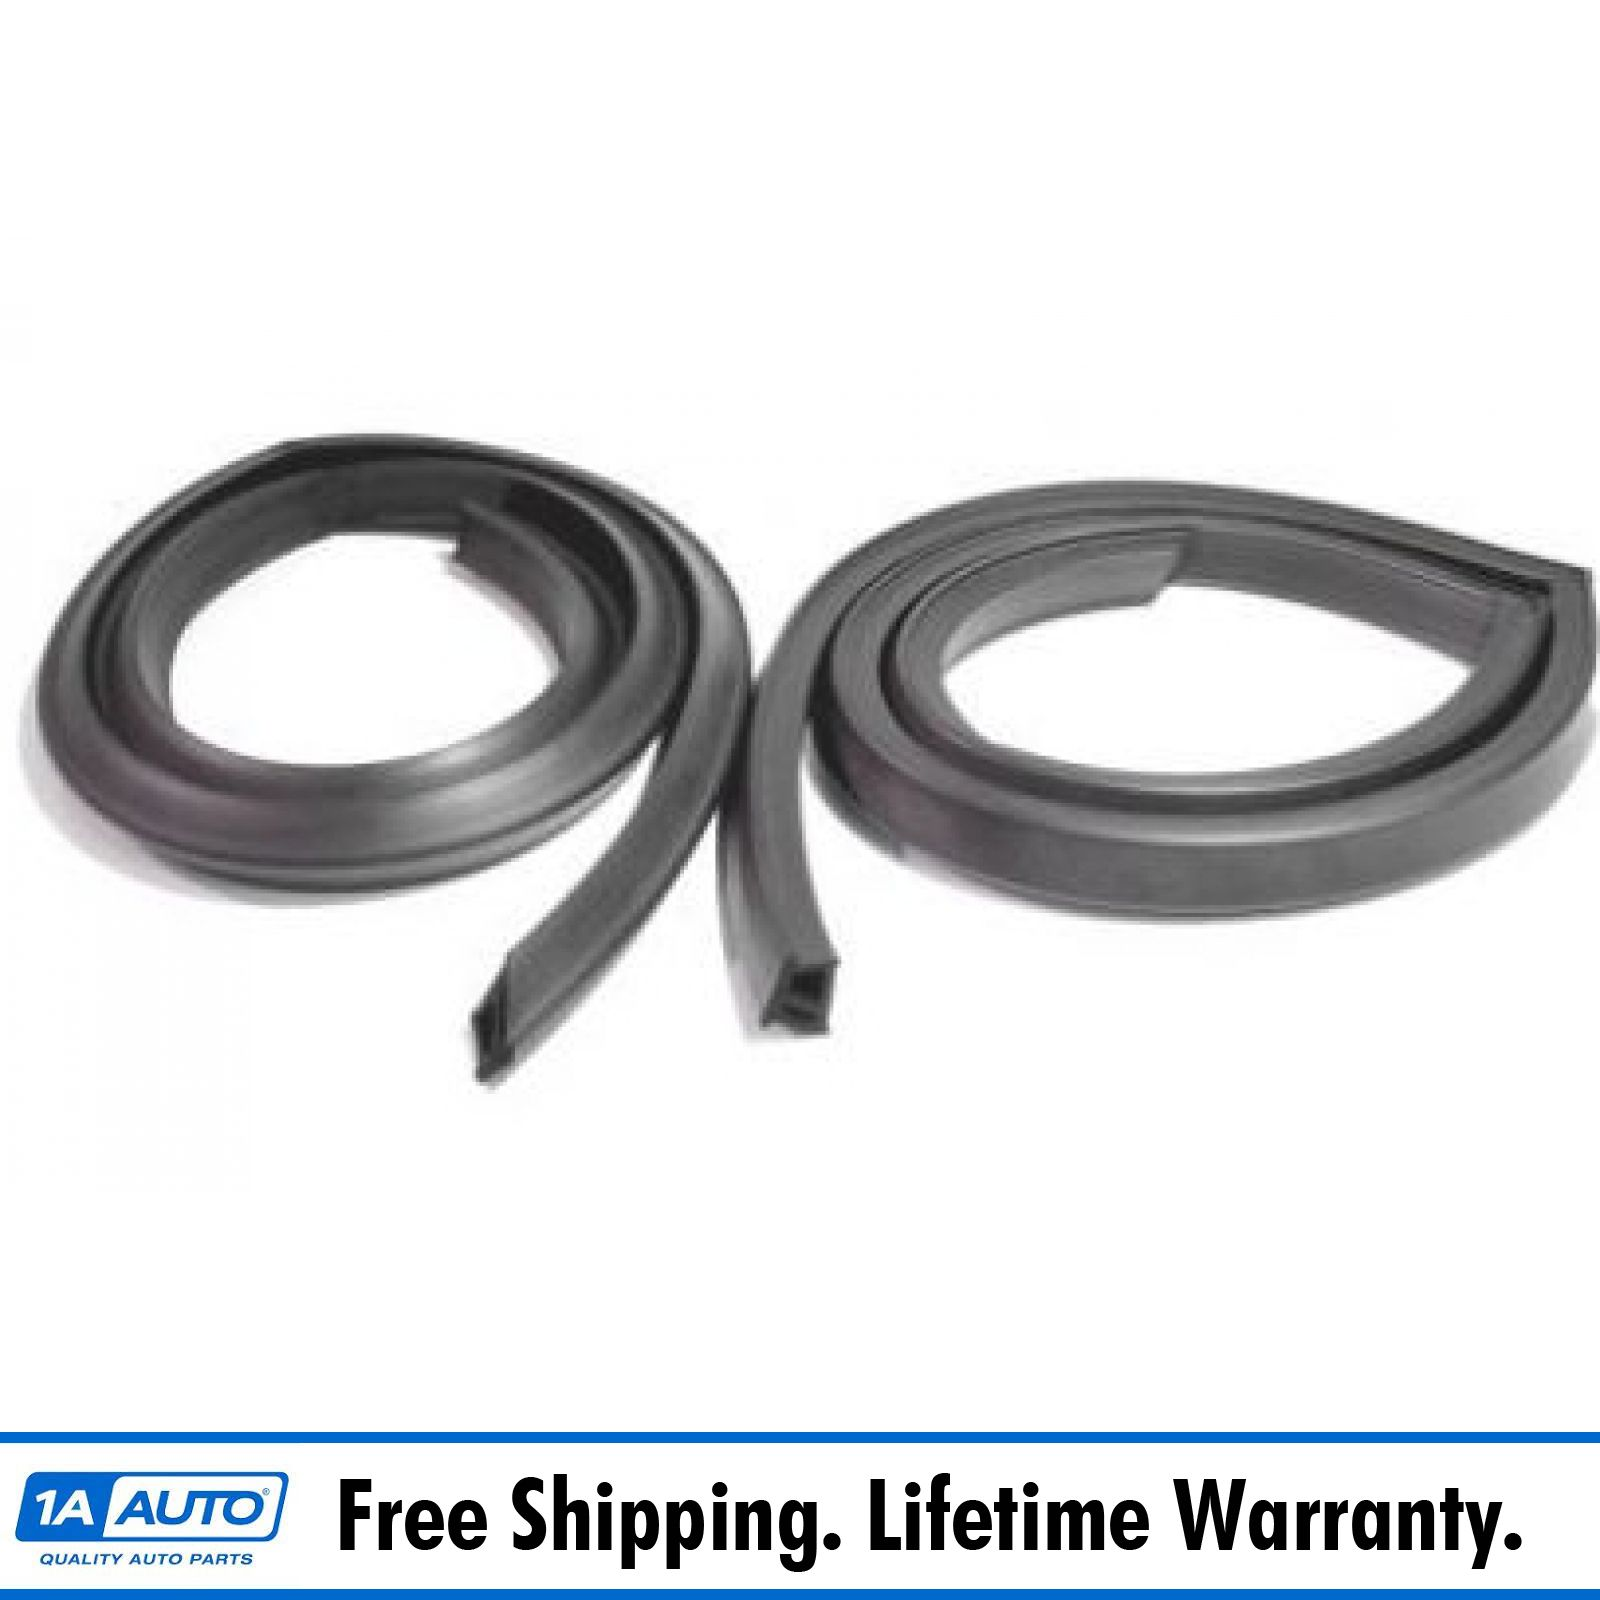 Roofrail Roof Rail Weatherstrip Seal Pair Set for 68-70 Plymouth Dodge 2 Dr Sdn